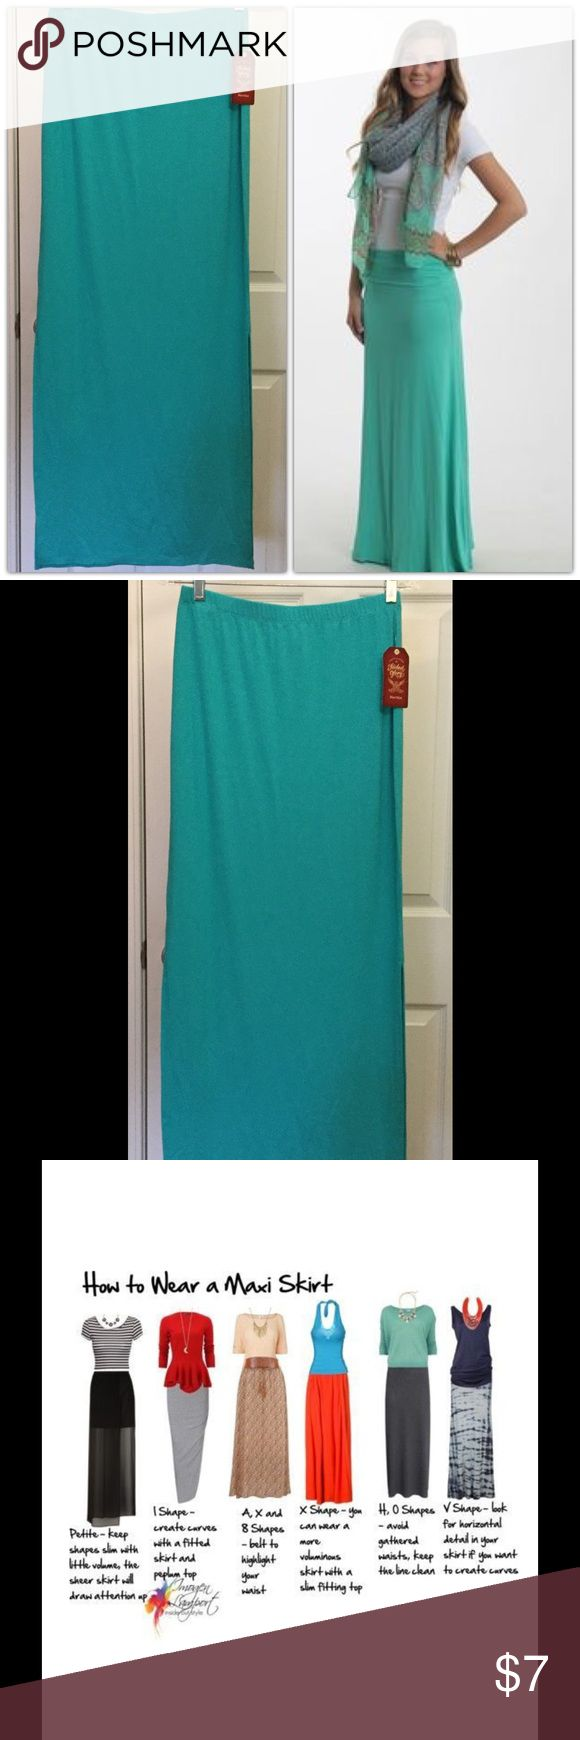 "Teal Maxi Skirt NWT! There are all kinds of styles when wearing a Maxi. Lots of options! This one is 42"" long size Small. Faded Glory Skirts Maxi"